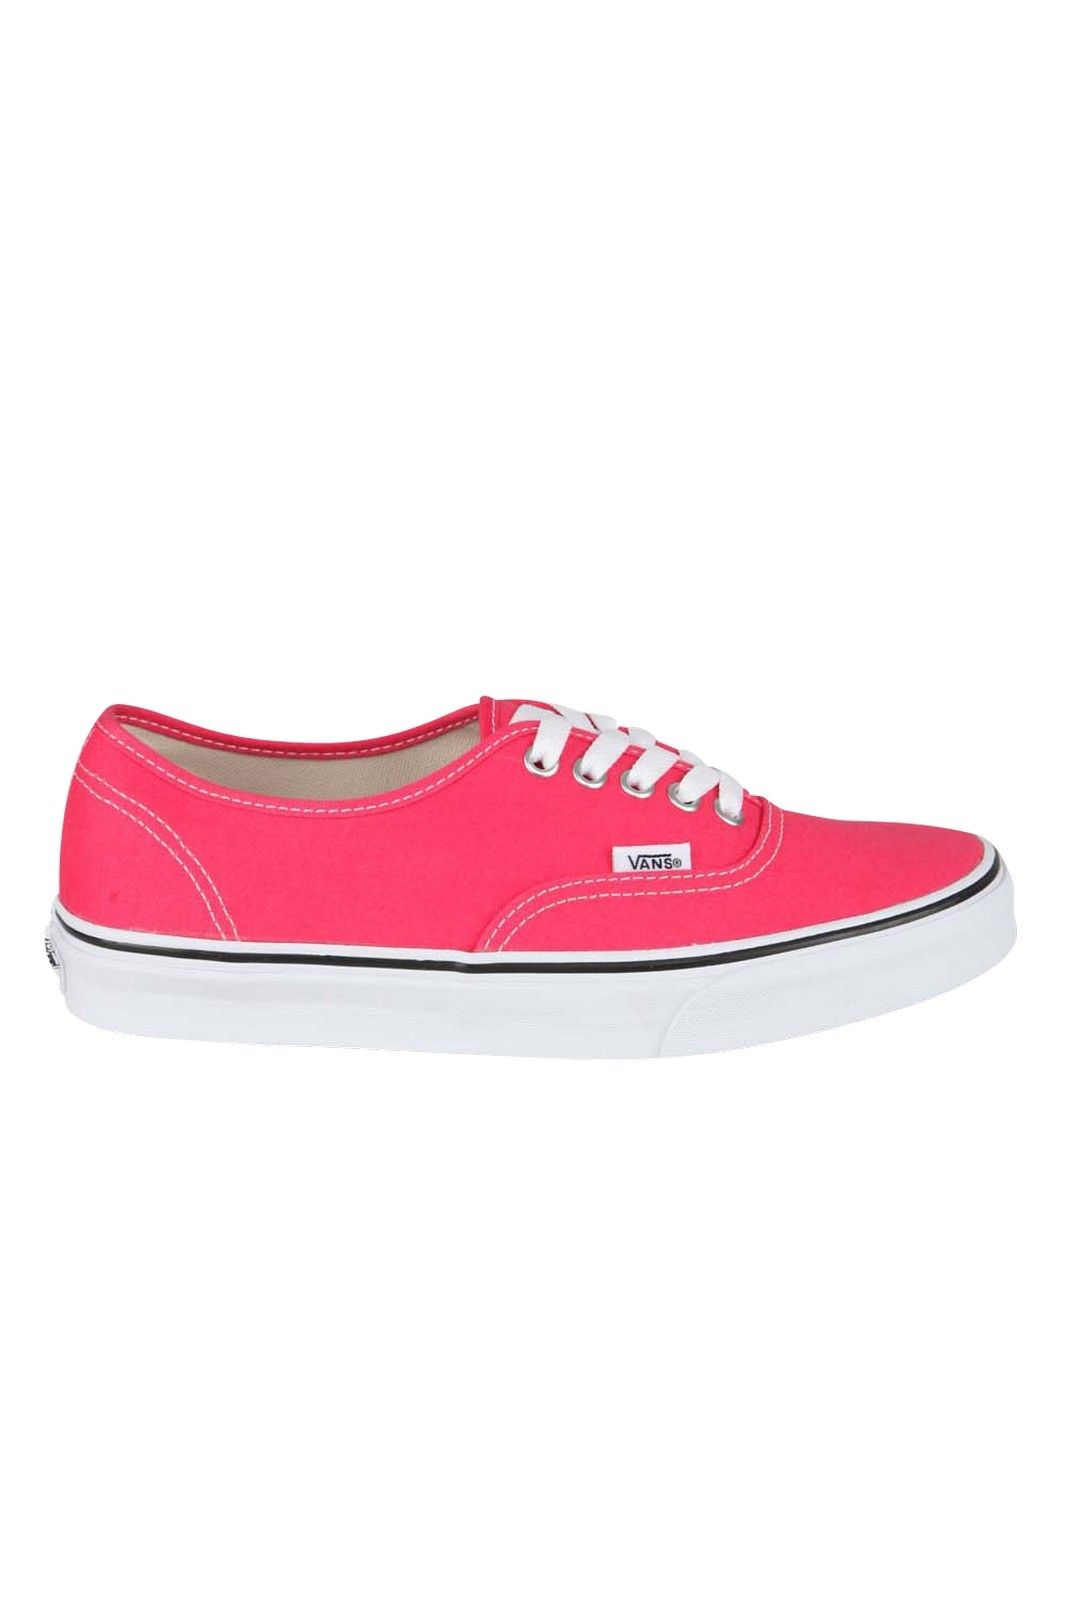 Alta qualit Chaussures Rose Authentic Femme Vans vendita